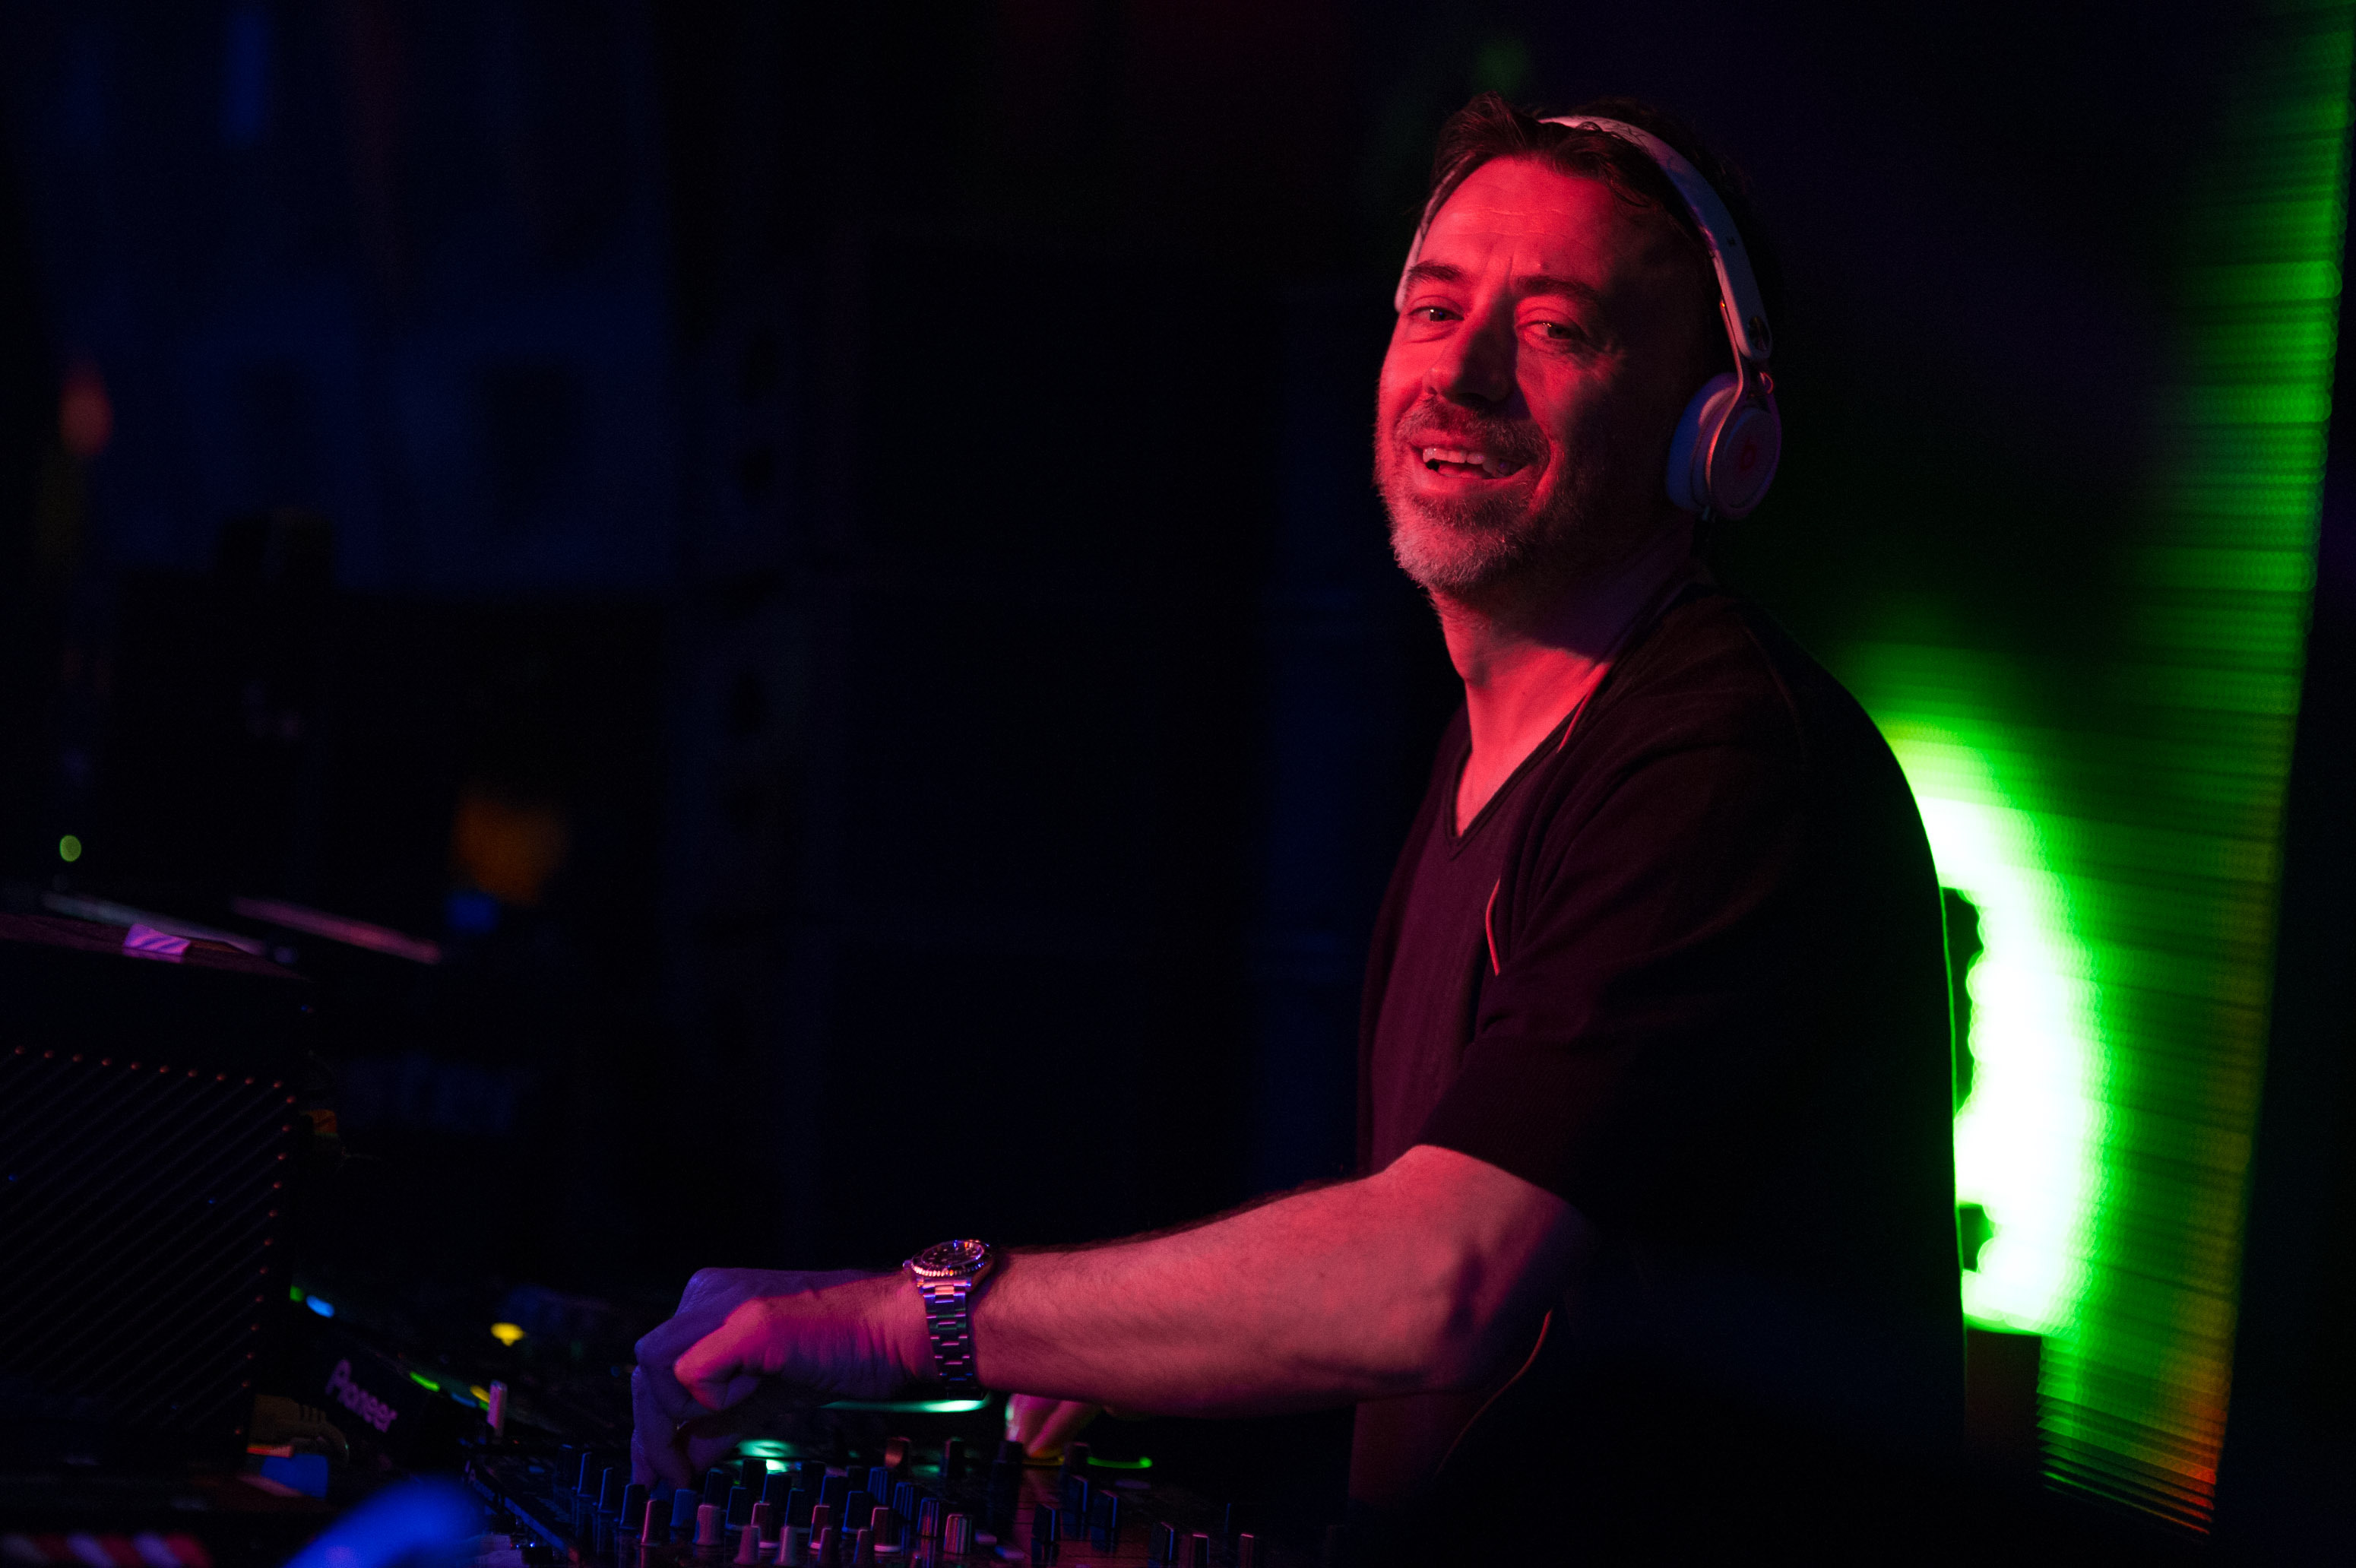 Benny Benassi Hd Background 3100x2063